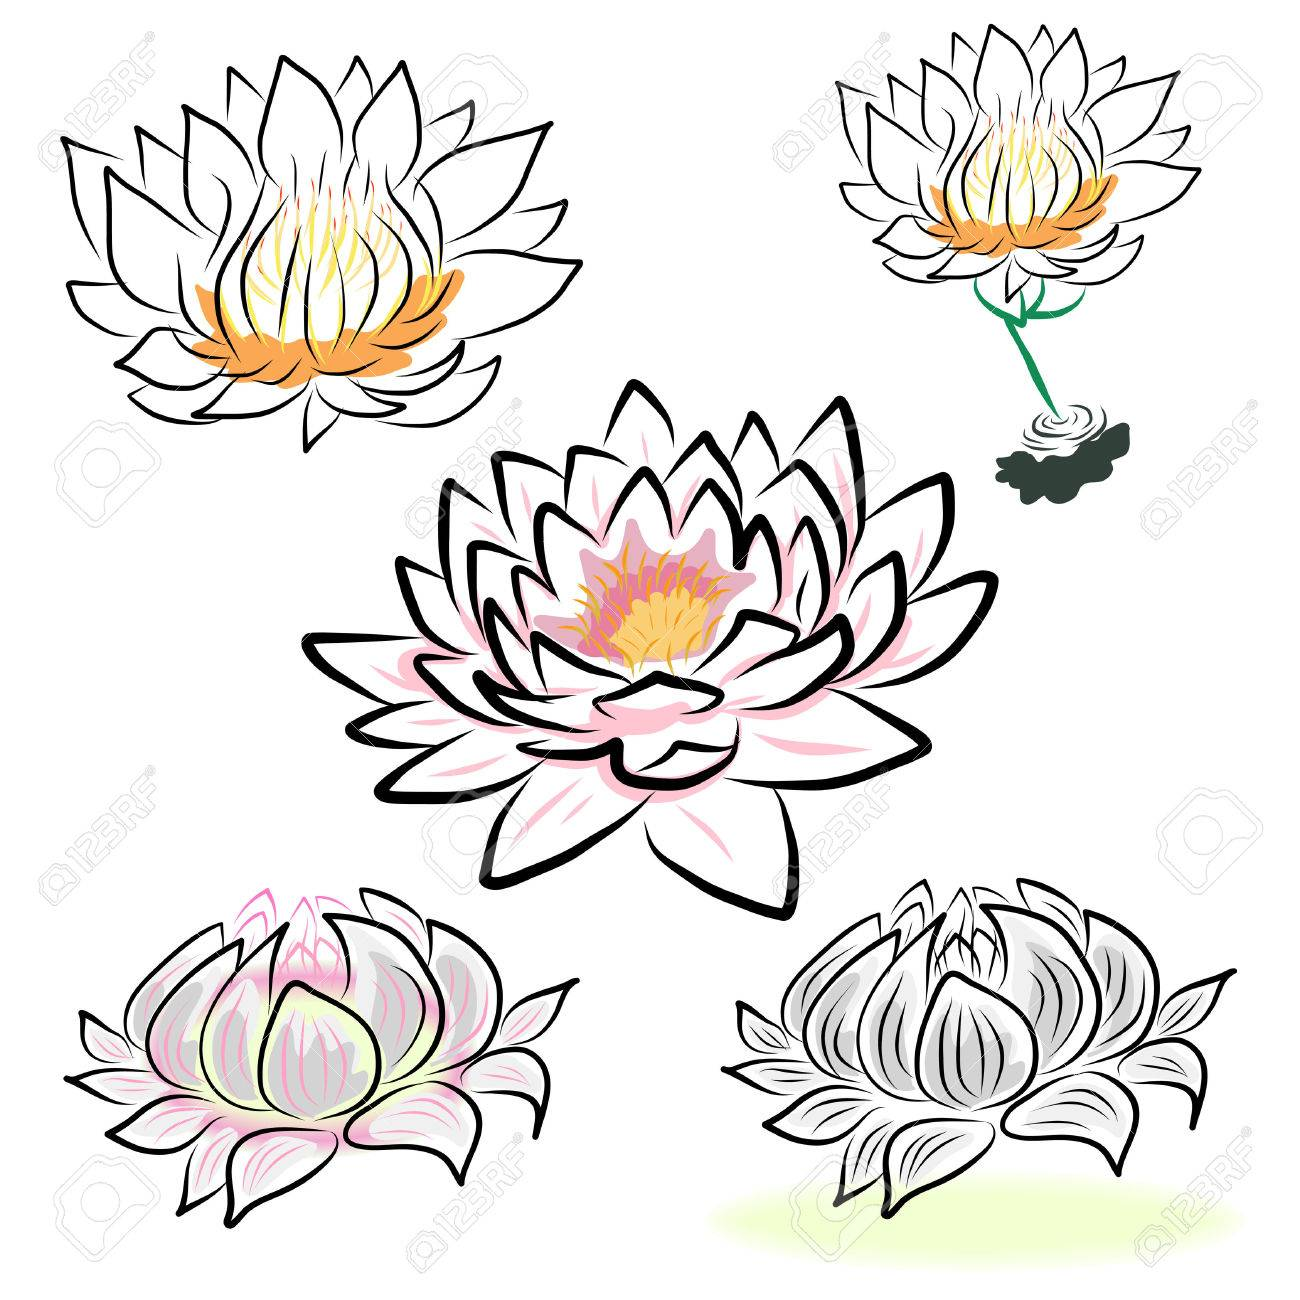 1300x1300 Lotus Drawing Stock Photos. Royalty Free Business Images